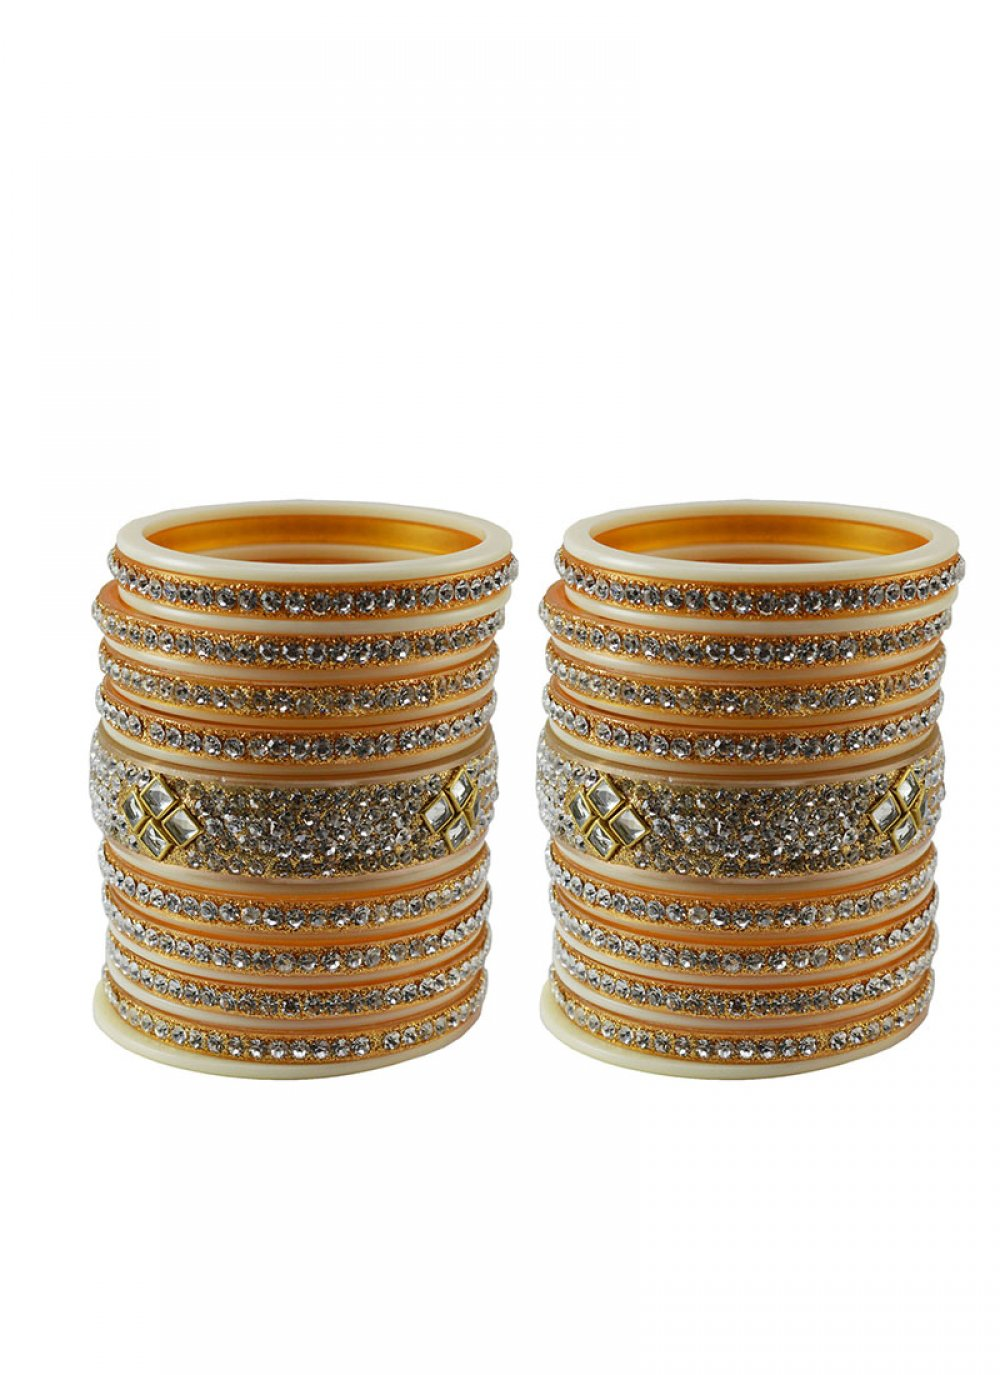 Stone Work Bangles in White